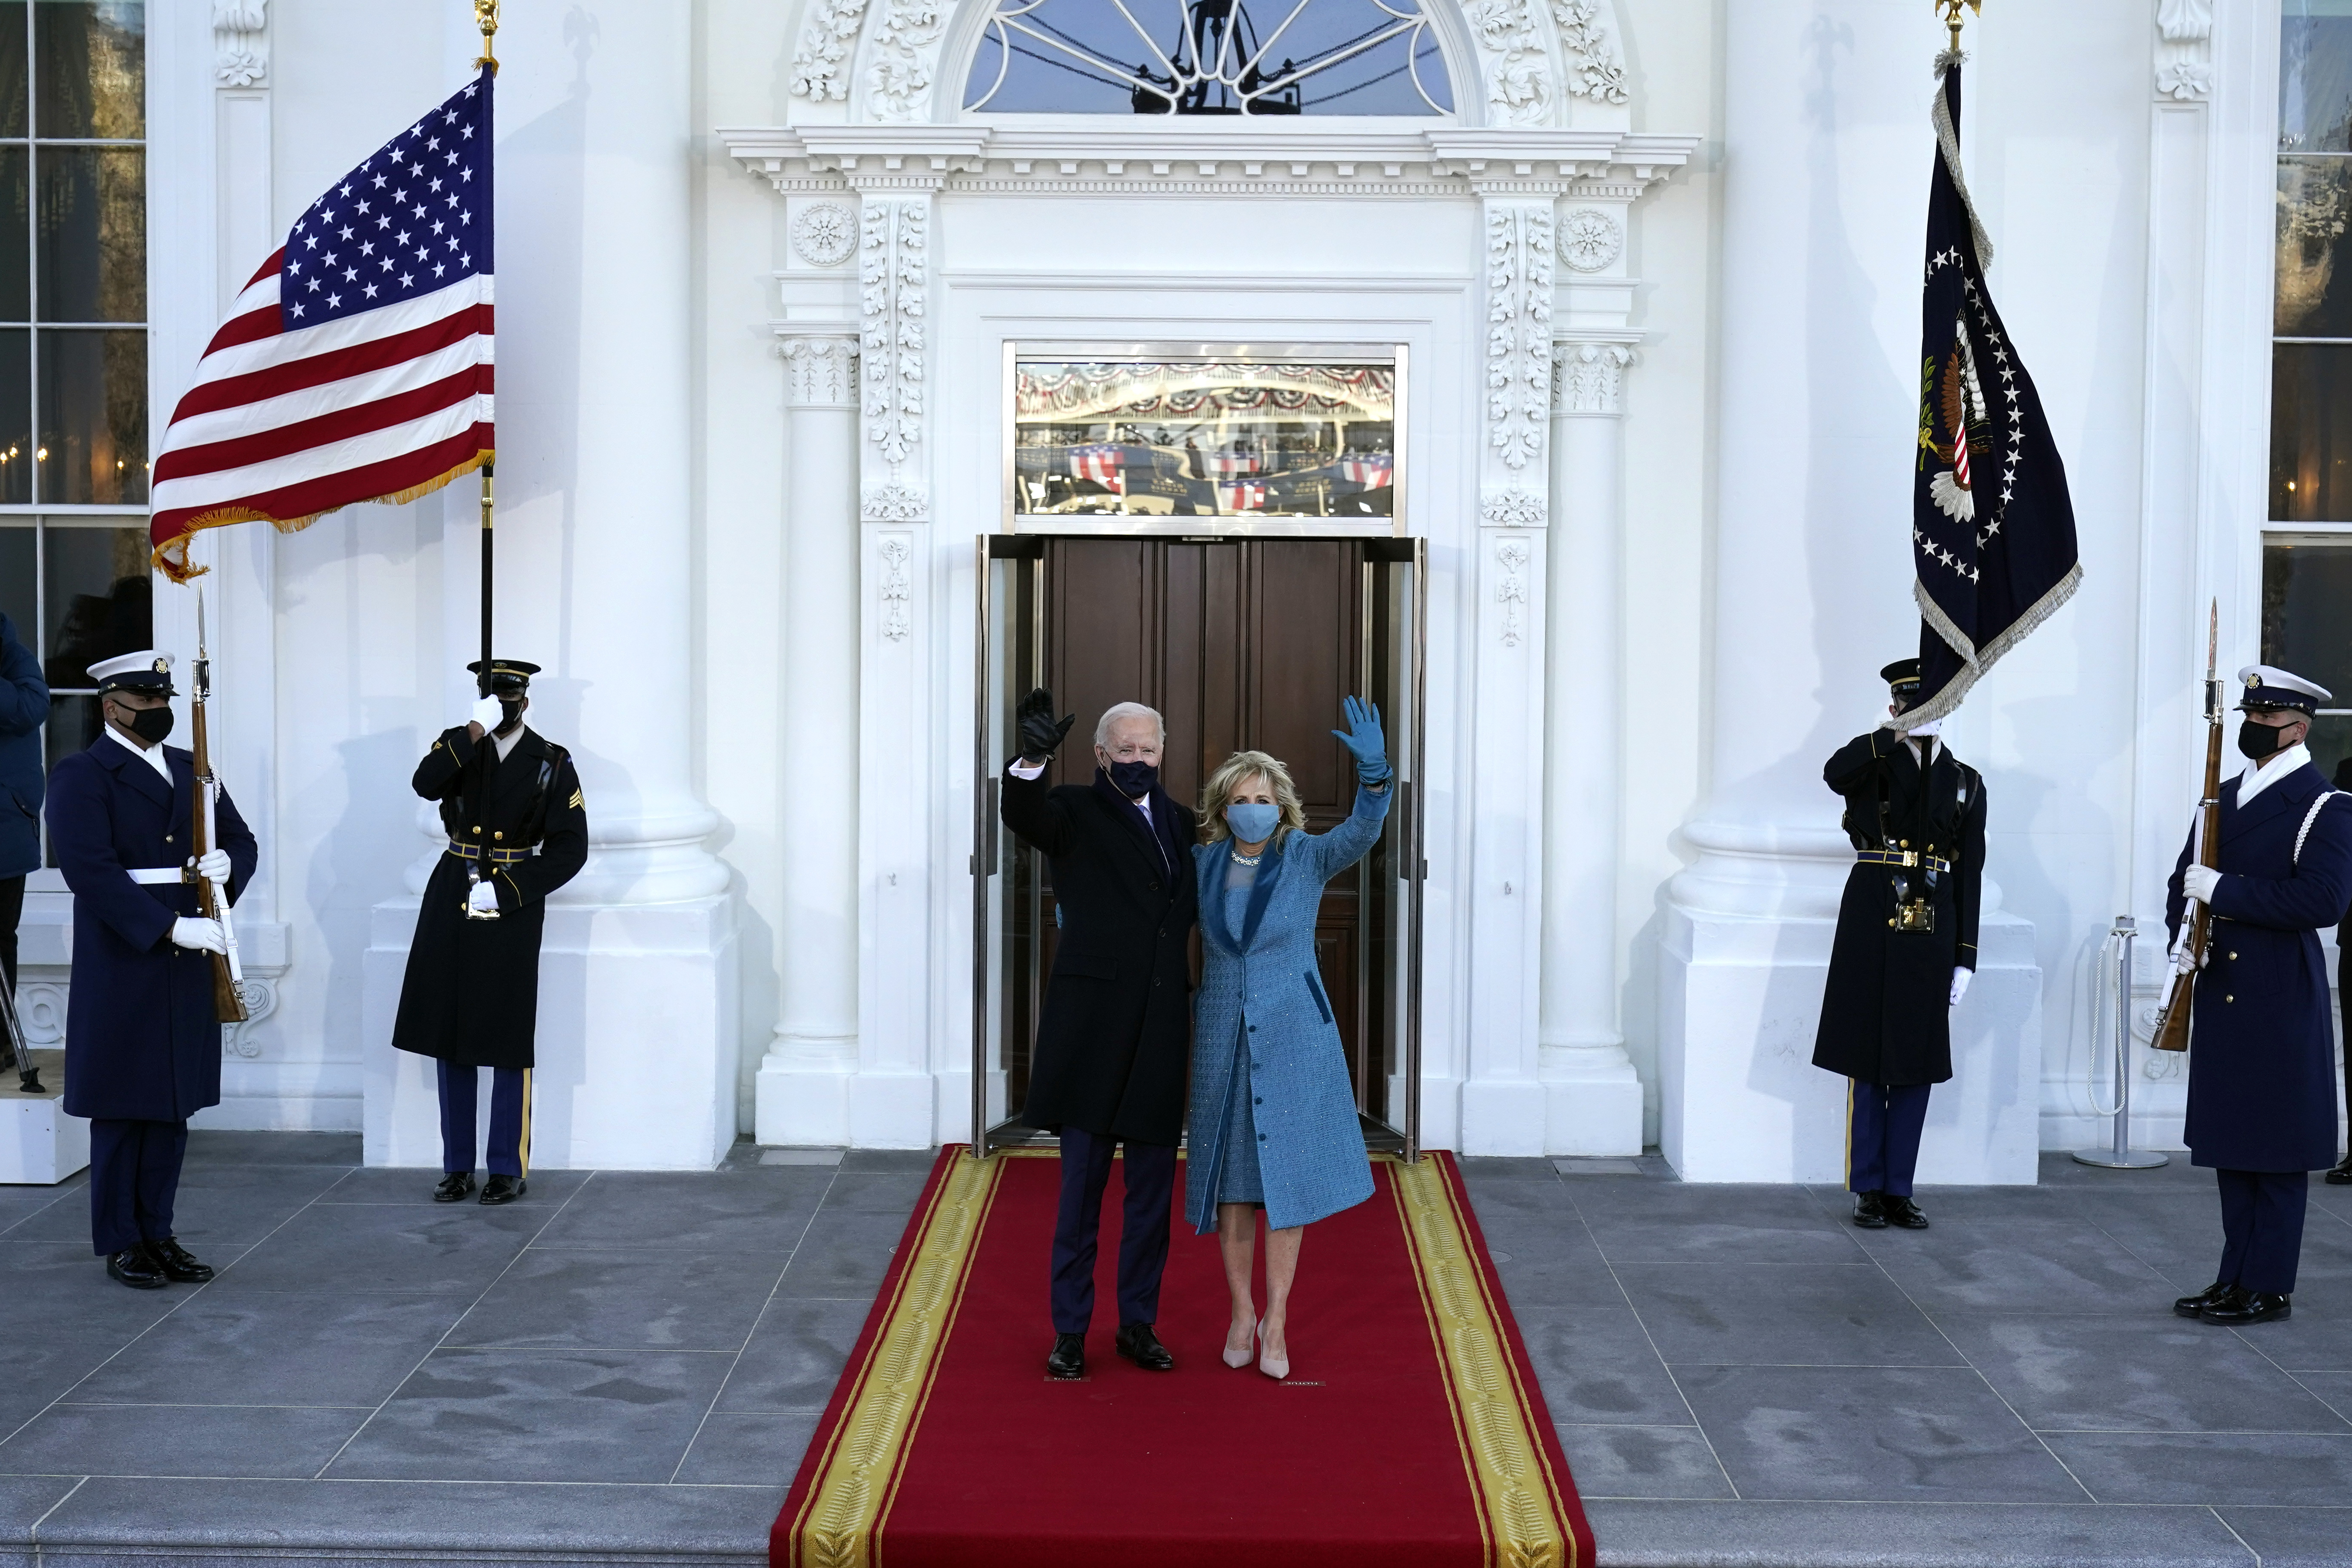 President Joe Biden and first lady Jill Biden wave as they arrive at the North Portico of the White House